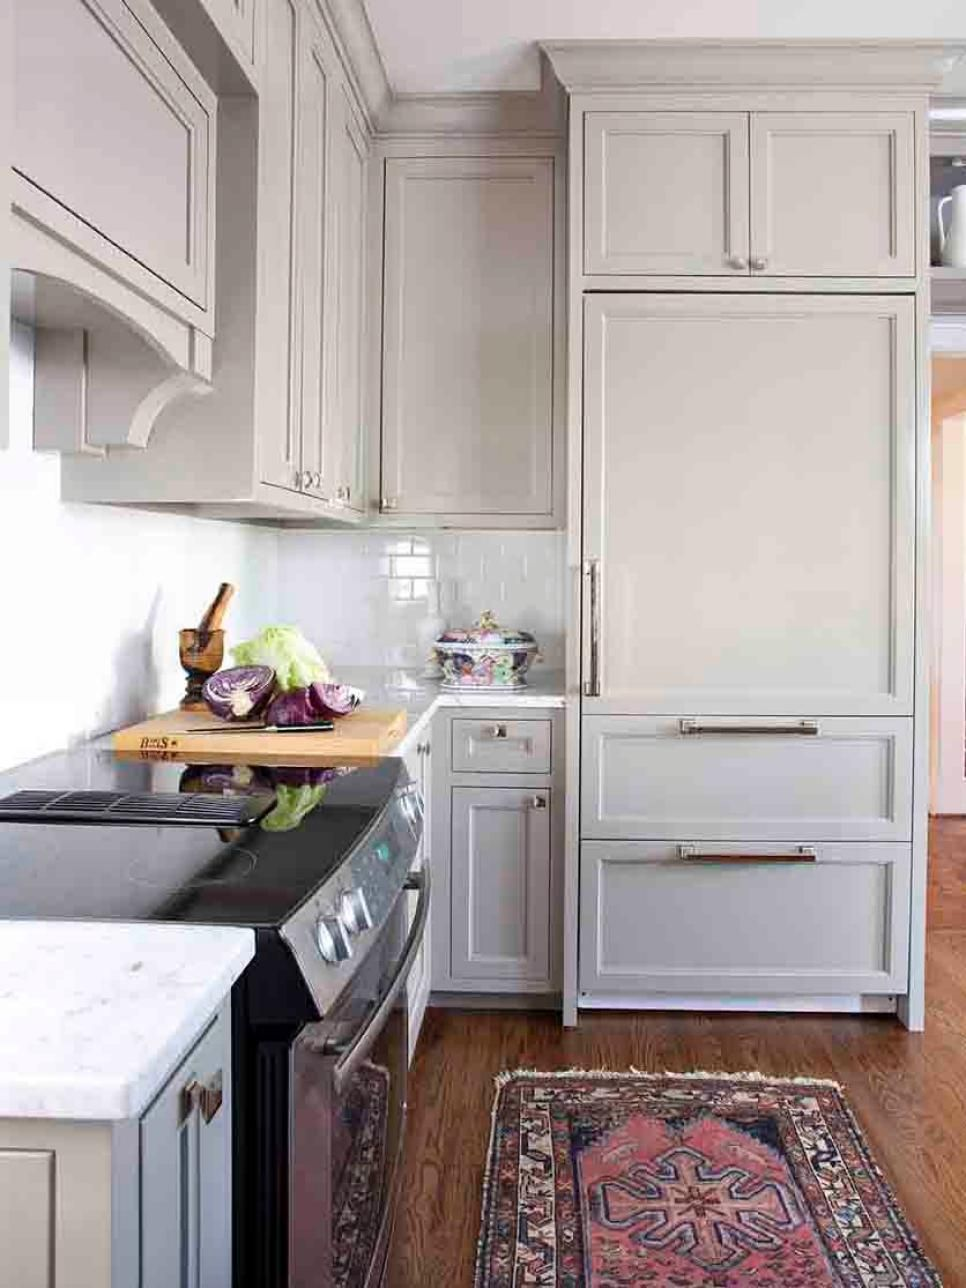 Pictures of kitchen cabinets ideas u inspiration from beige